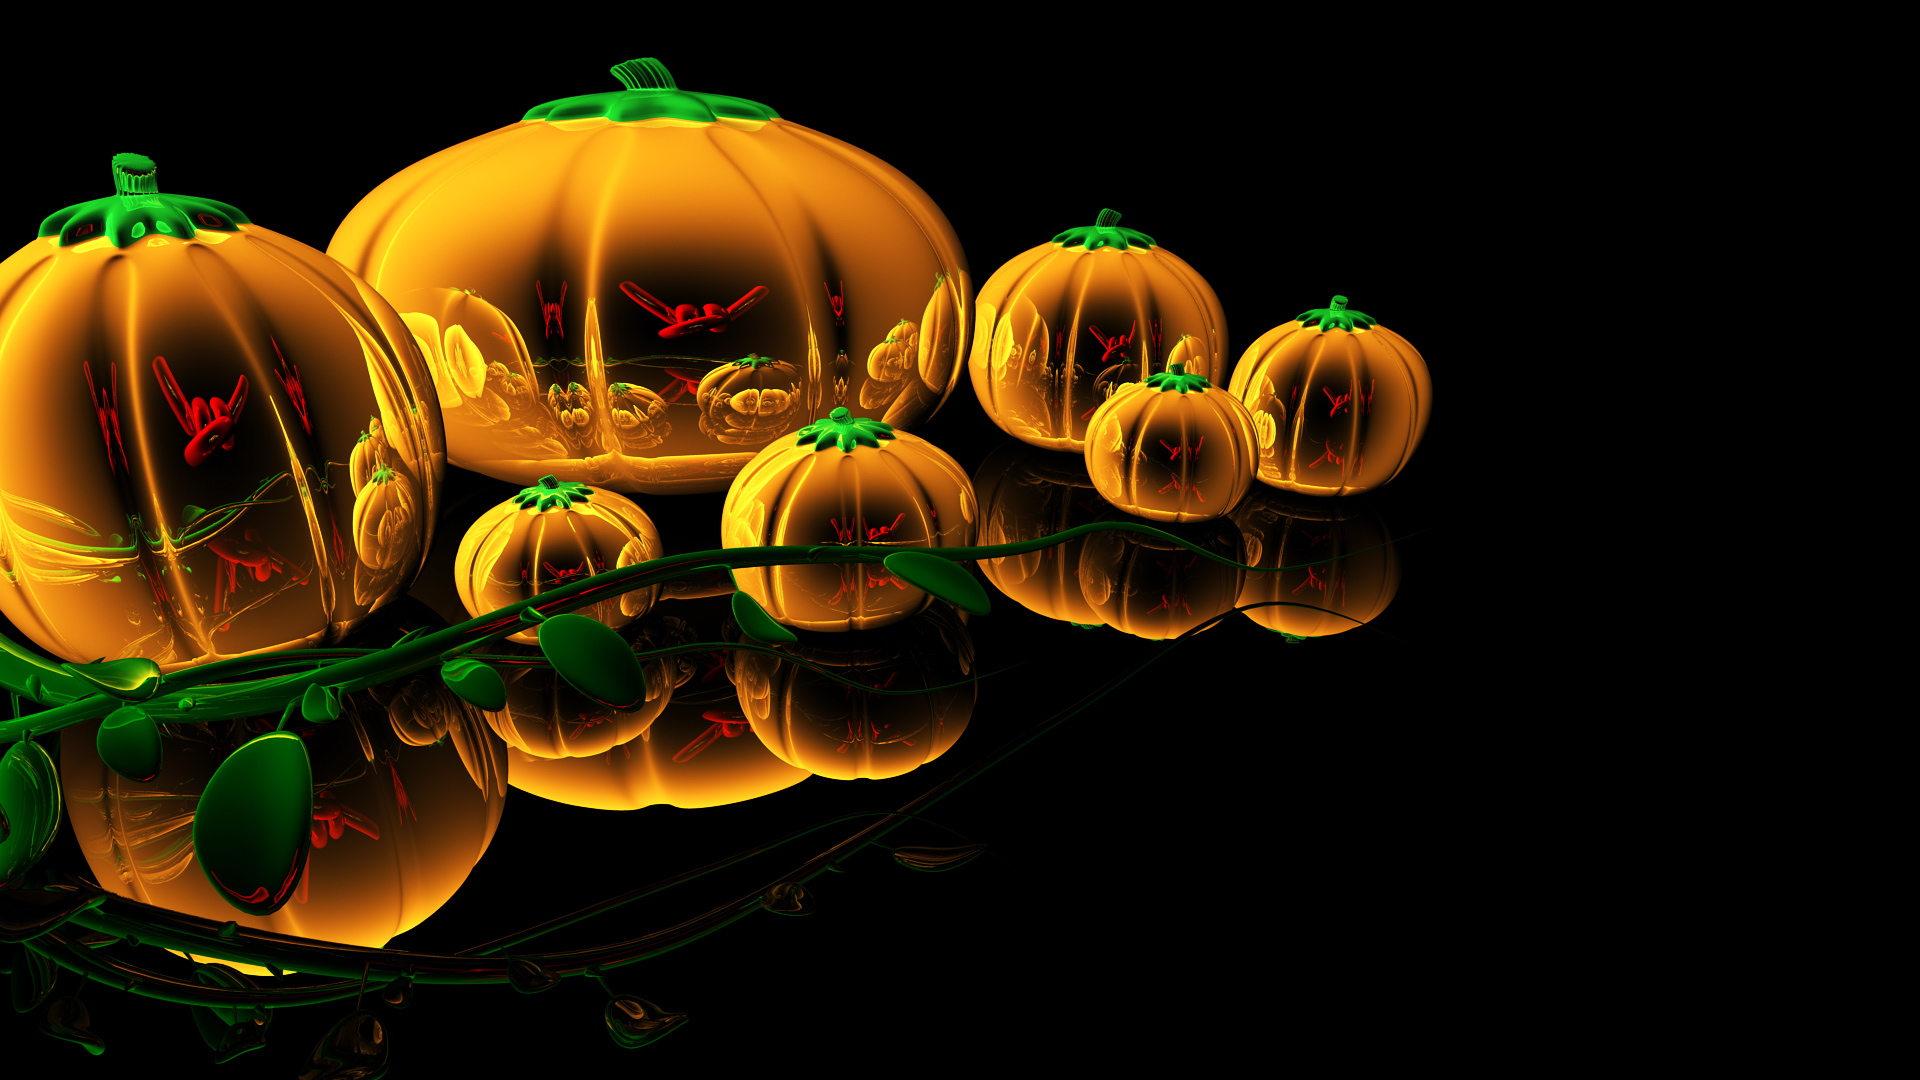 Check this out our new Halloween 3D wallpaper 1920x1080